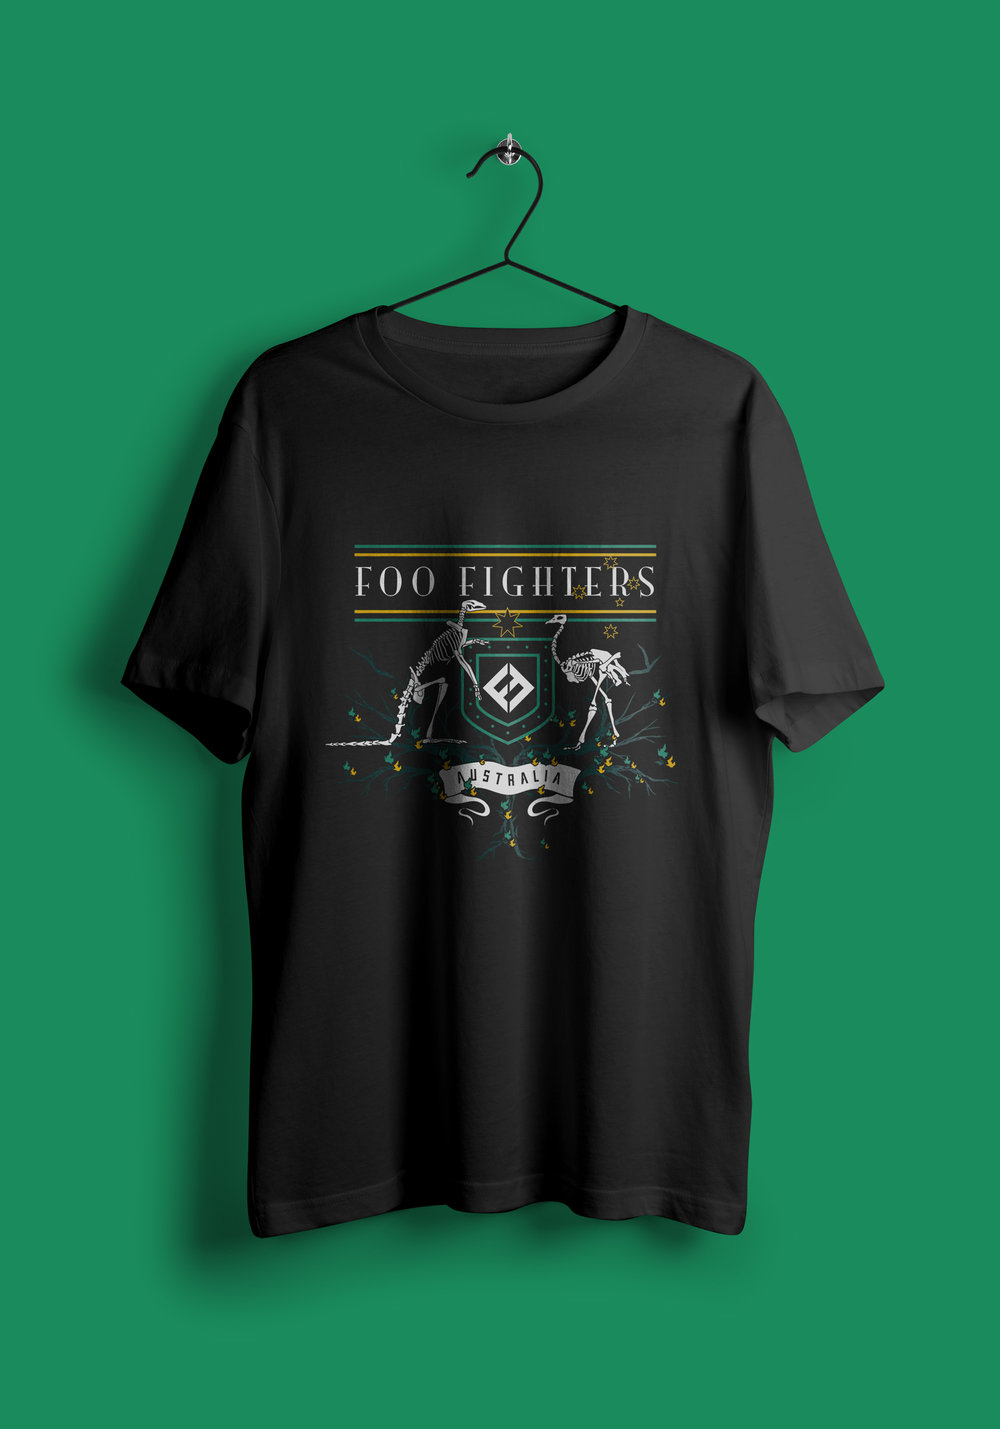 foo-fighters-australia-hanging.jpg